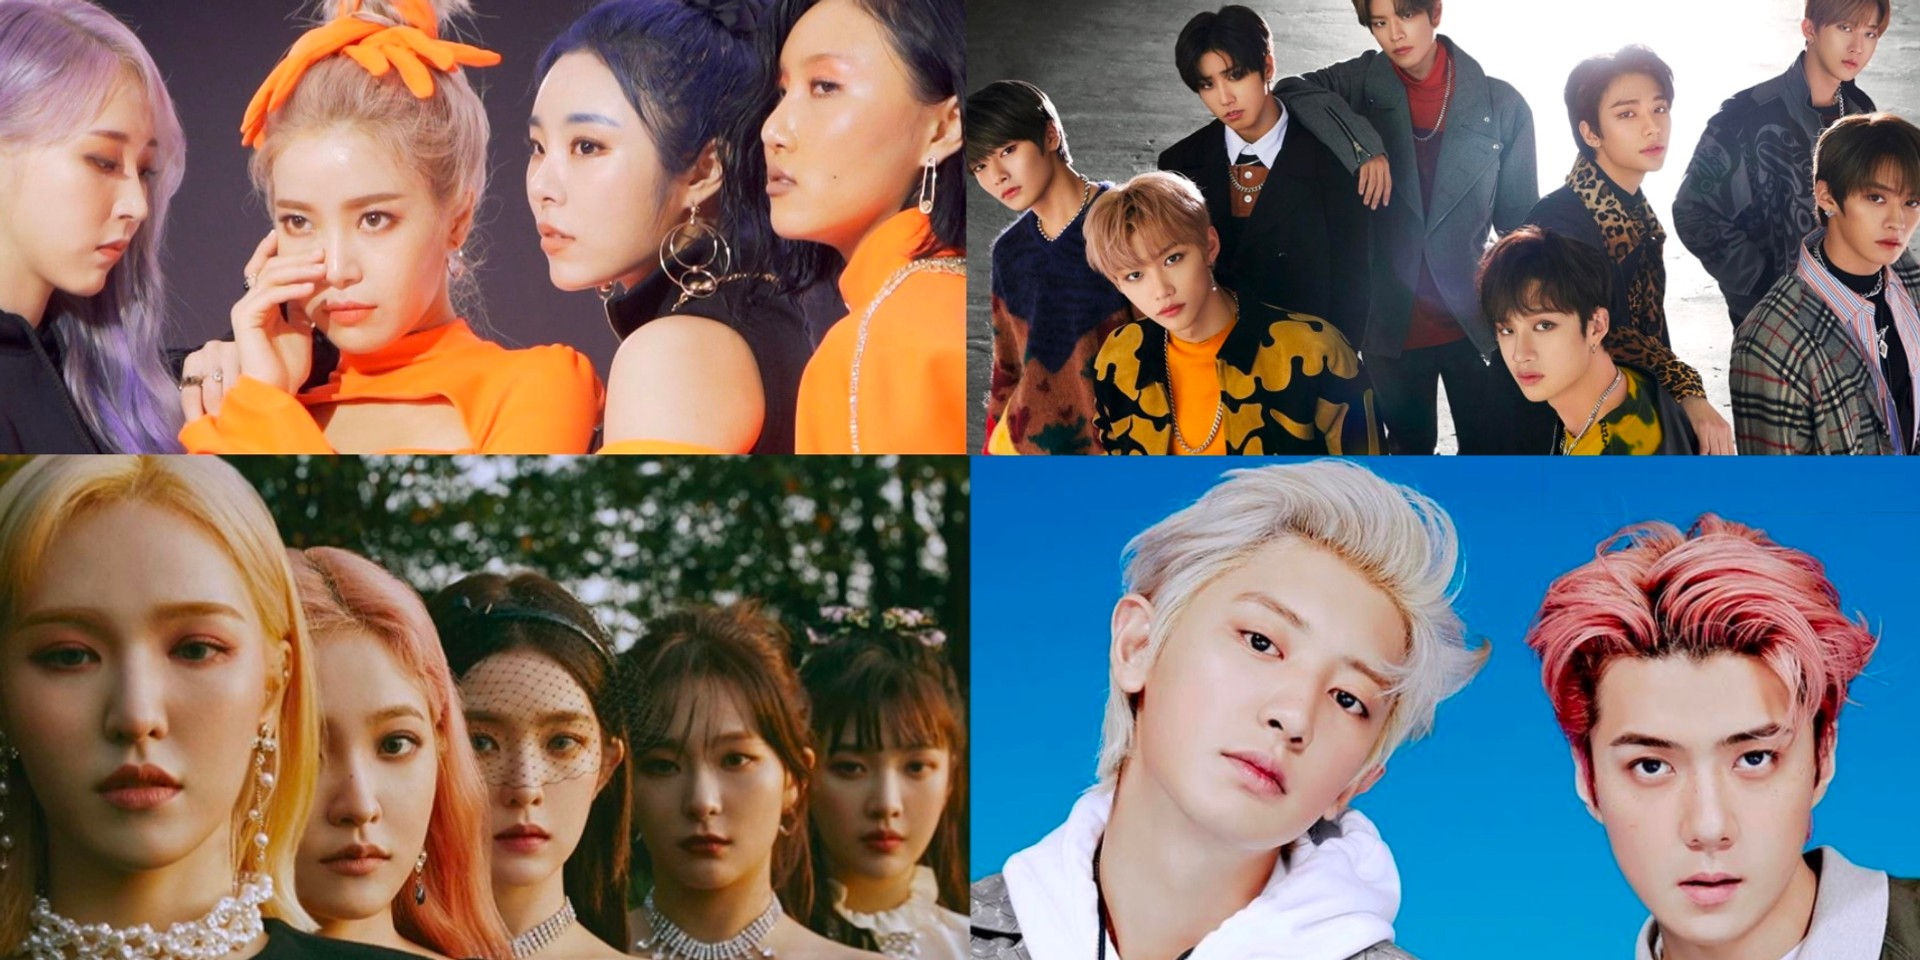 4 highlights from Dream Concert's 'CONNECT:D' online show, featuring Red Velvet, Mamamoo, EXO-SC, and more